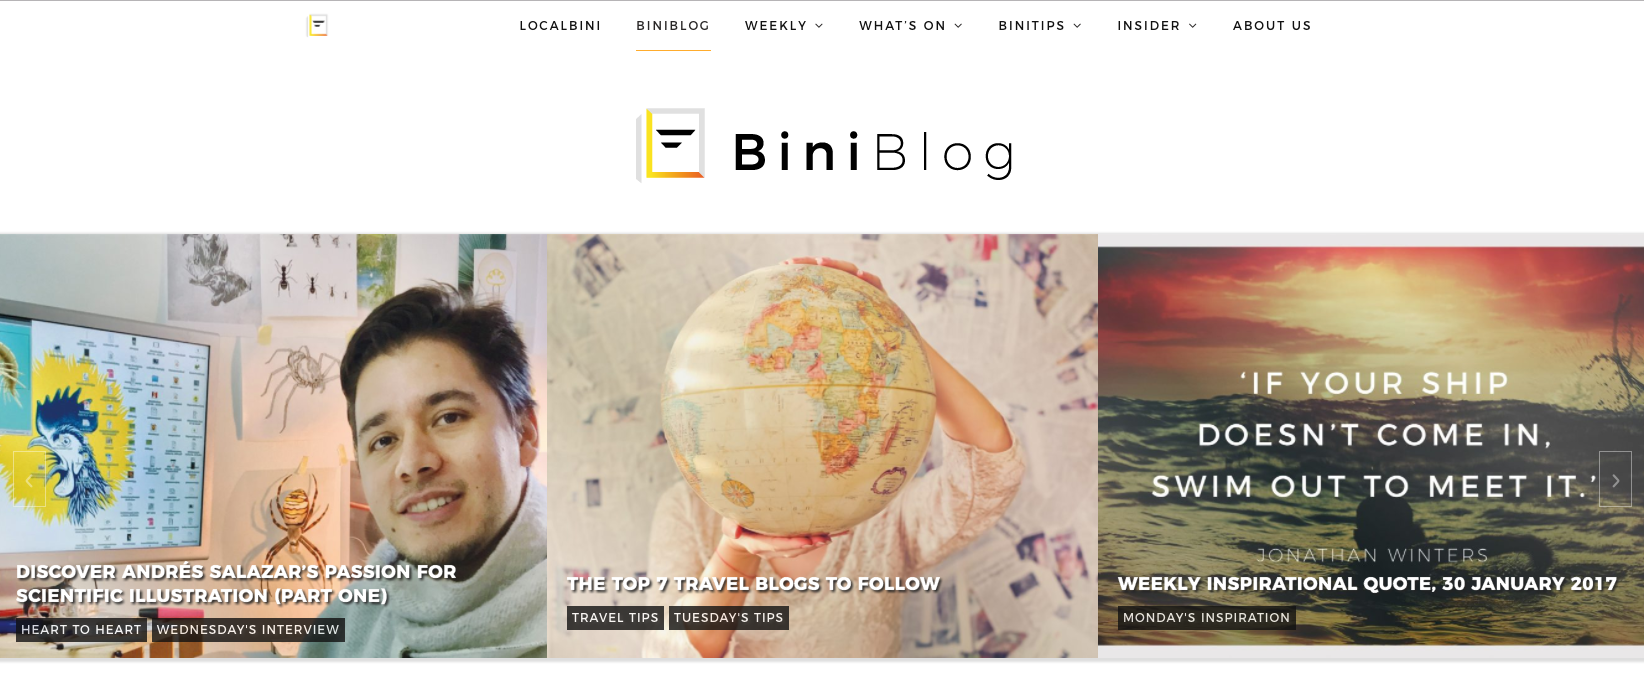 Best Travel Lifestyle Blog BiniBlog LocalBini Lifestyle Tips Inspiration Discovery Food Recipes